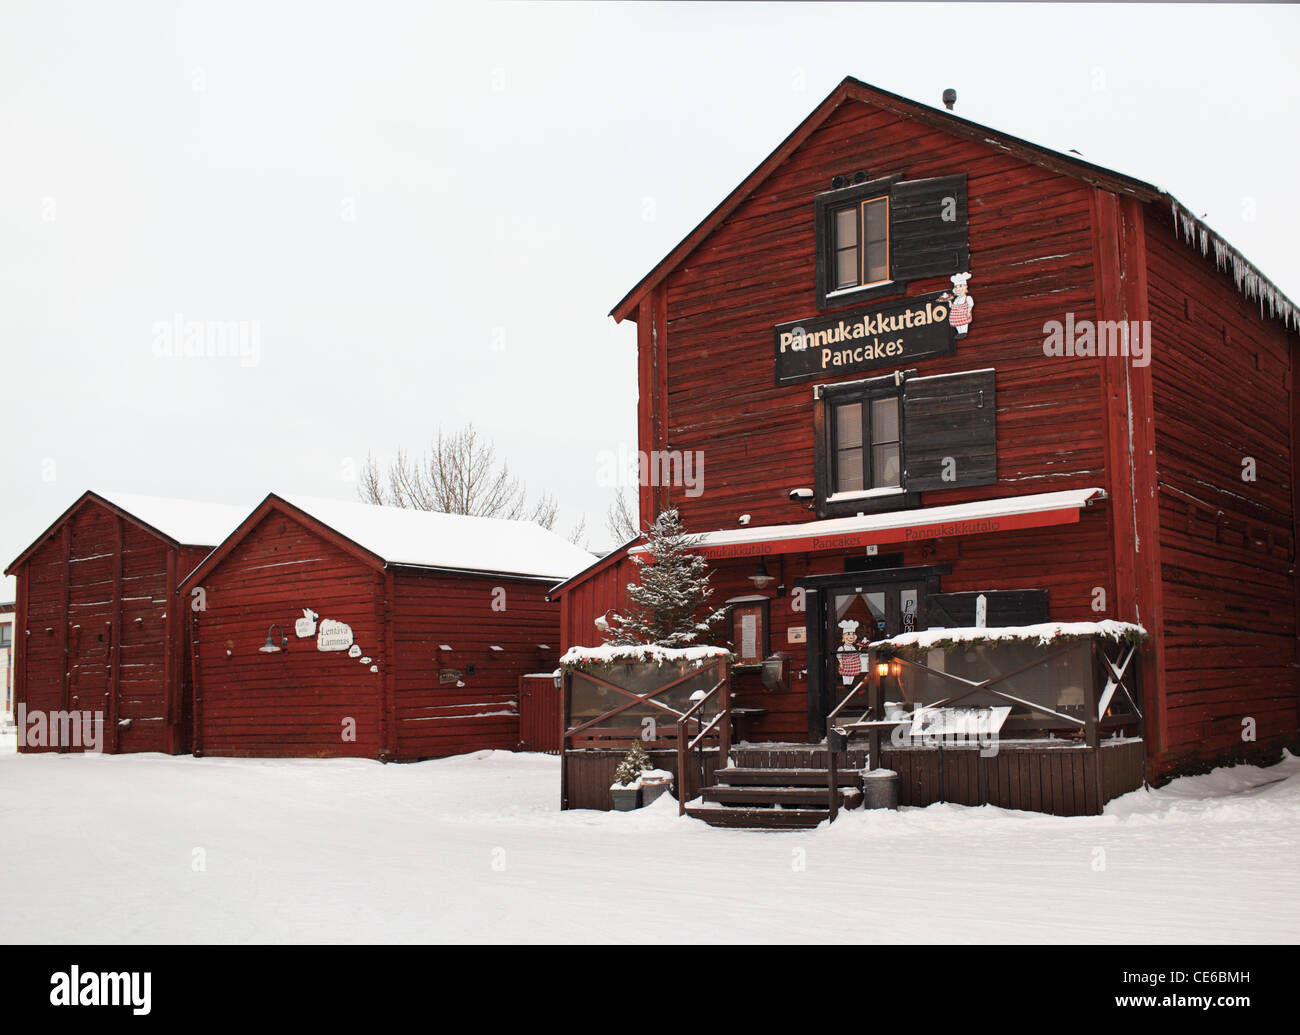 Old styled restaurant in Oulu, Finland - Stock Image